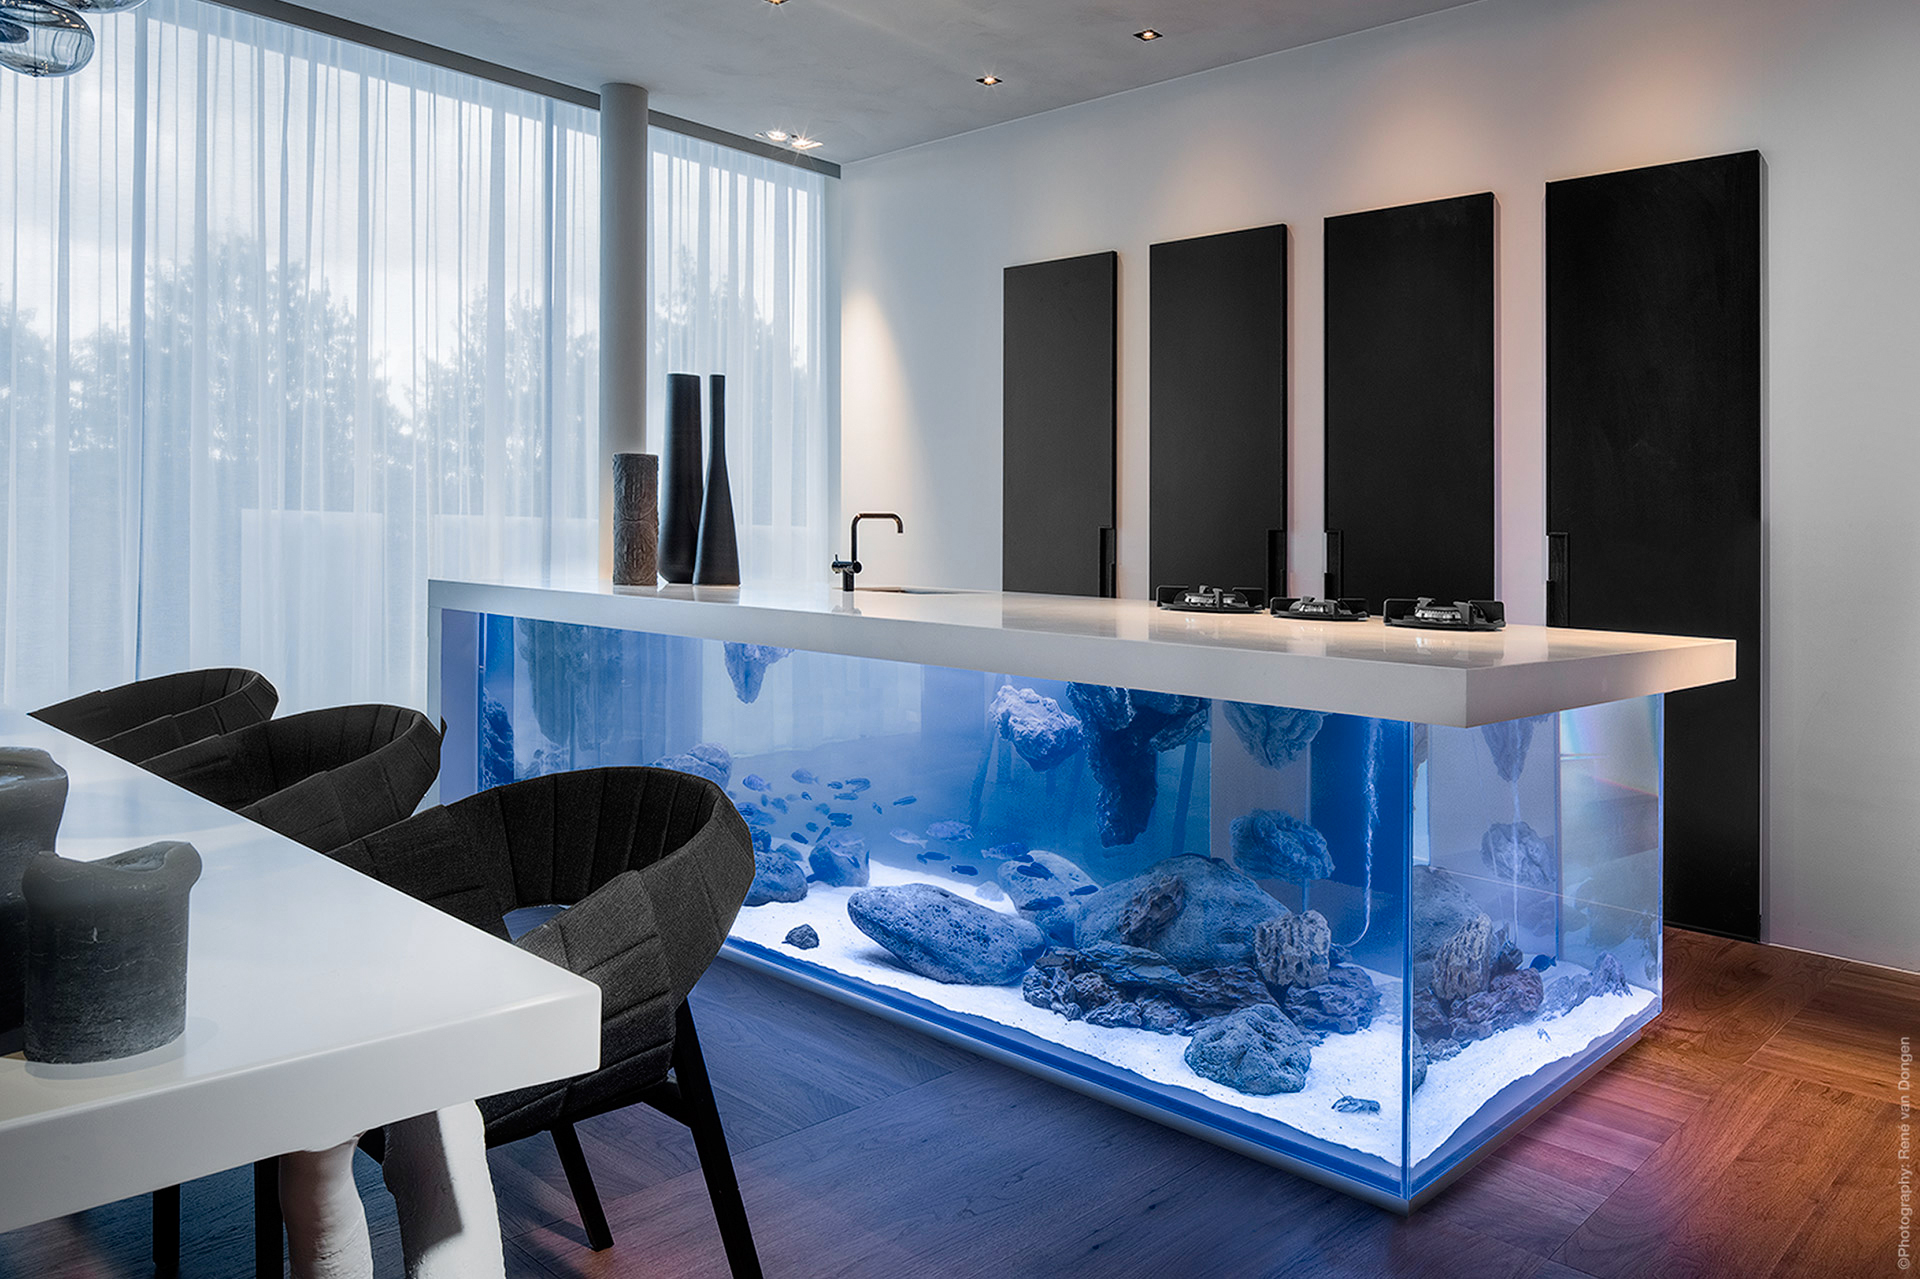 Rene van Dongen - interior photography: Ocean Kitchen